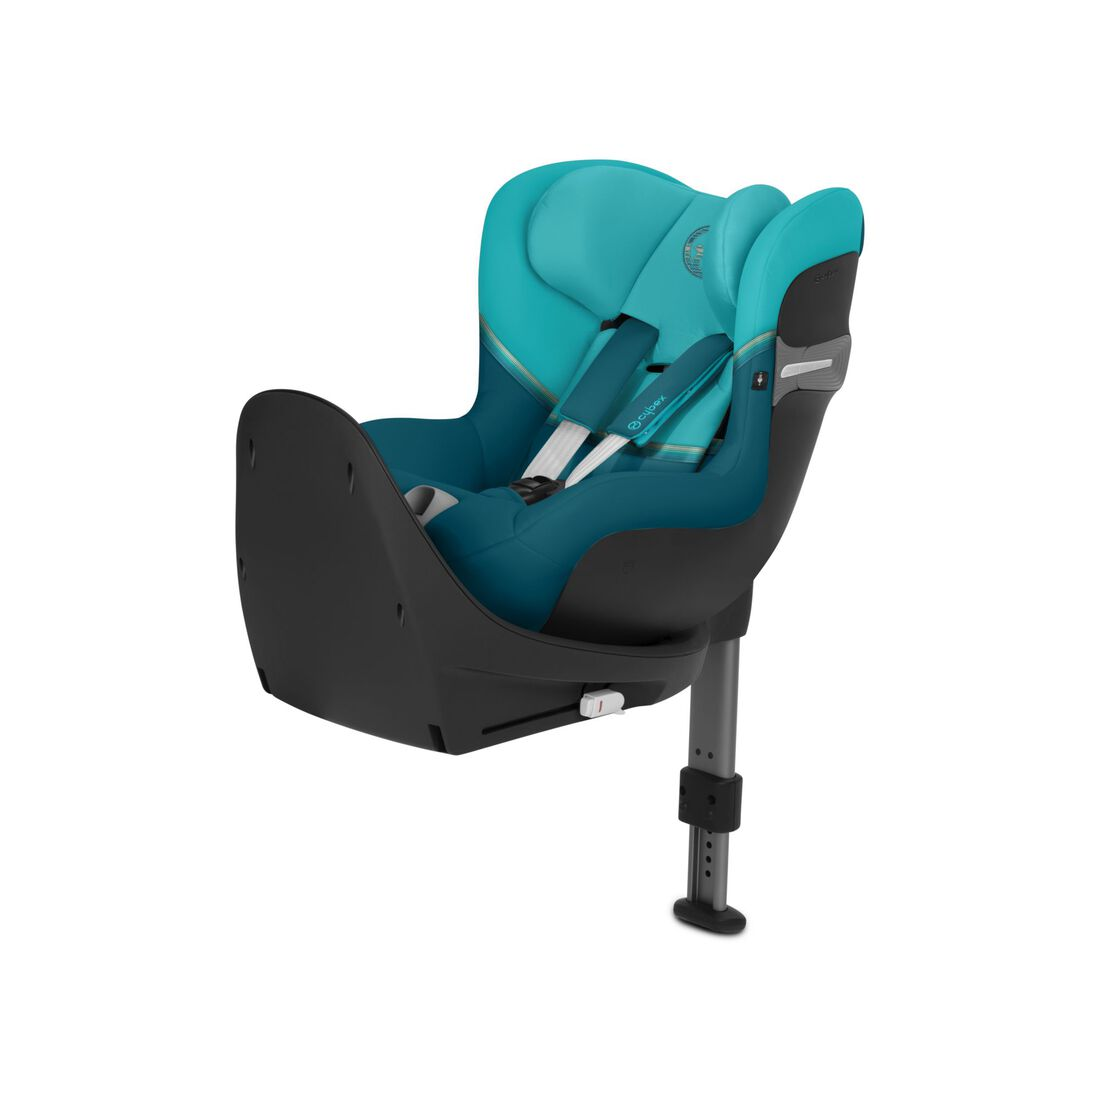 CYBEX Sirona S i-Size - River Blue in River Blue large image number 1